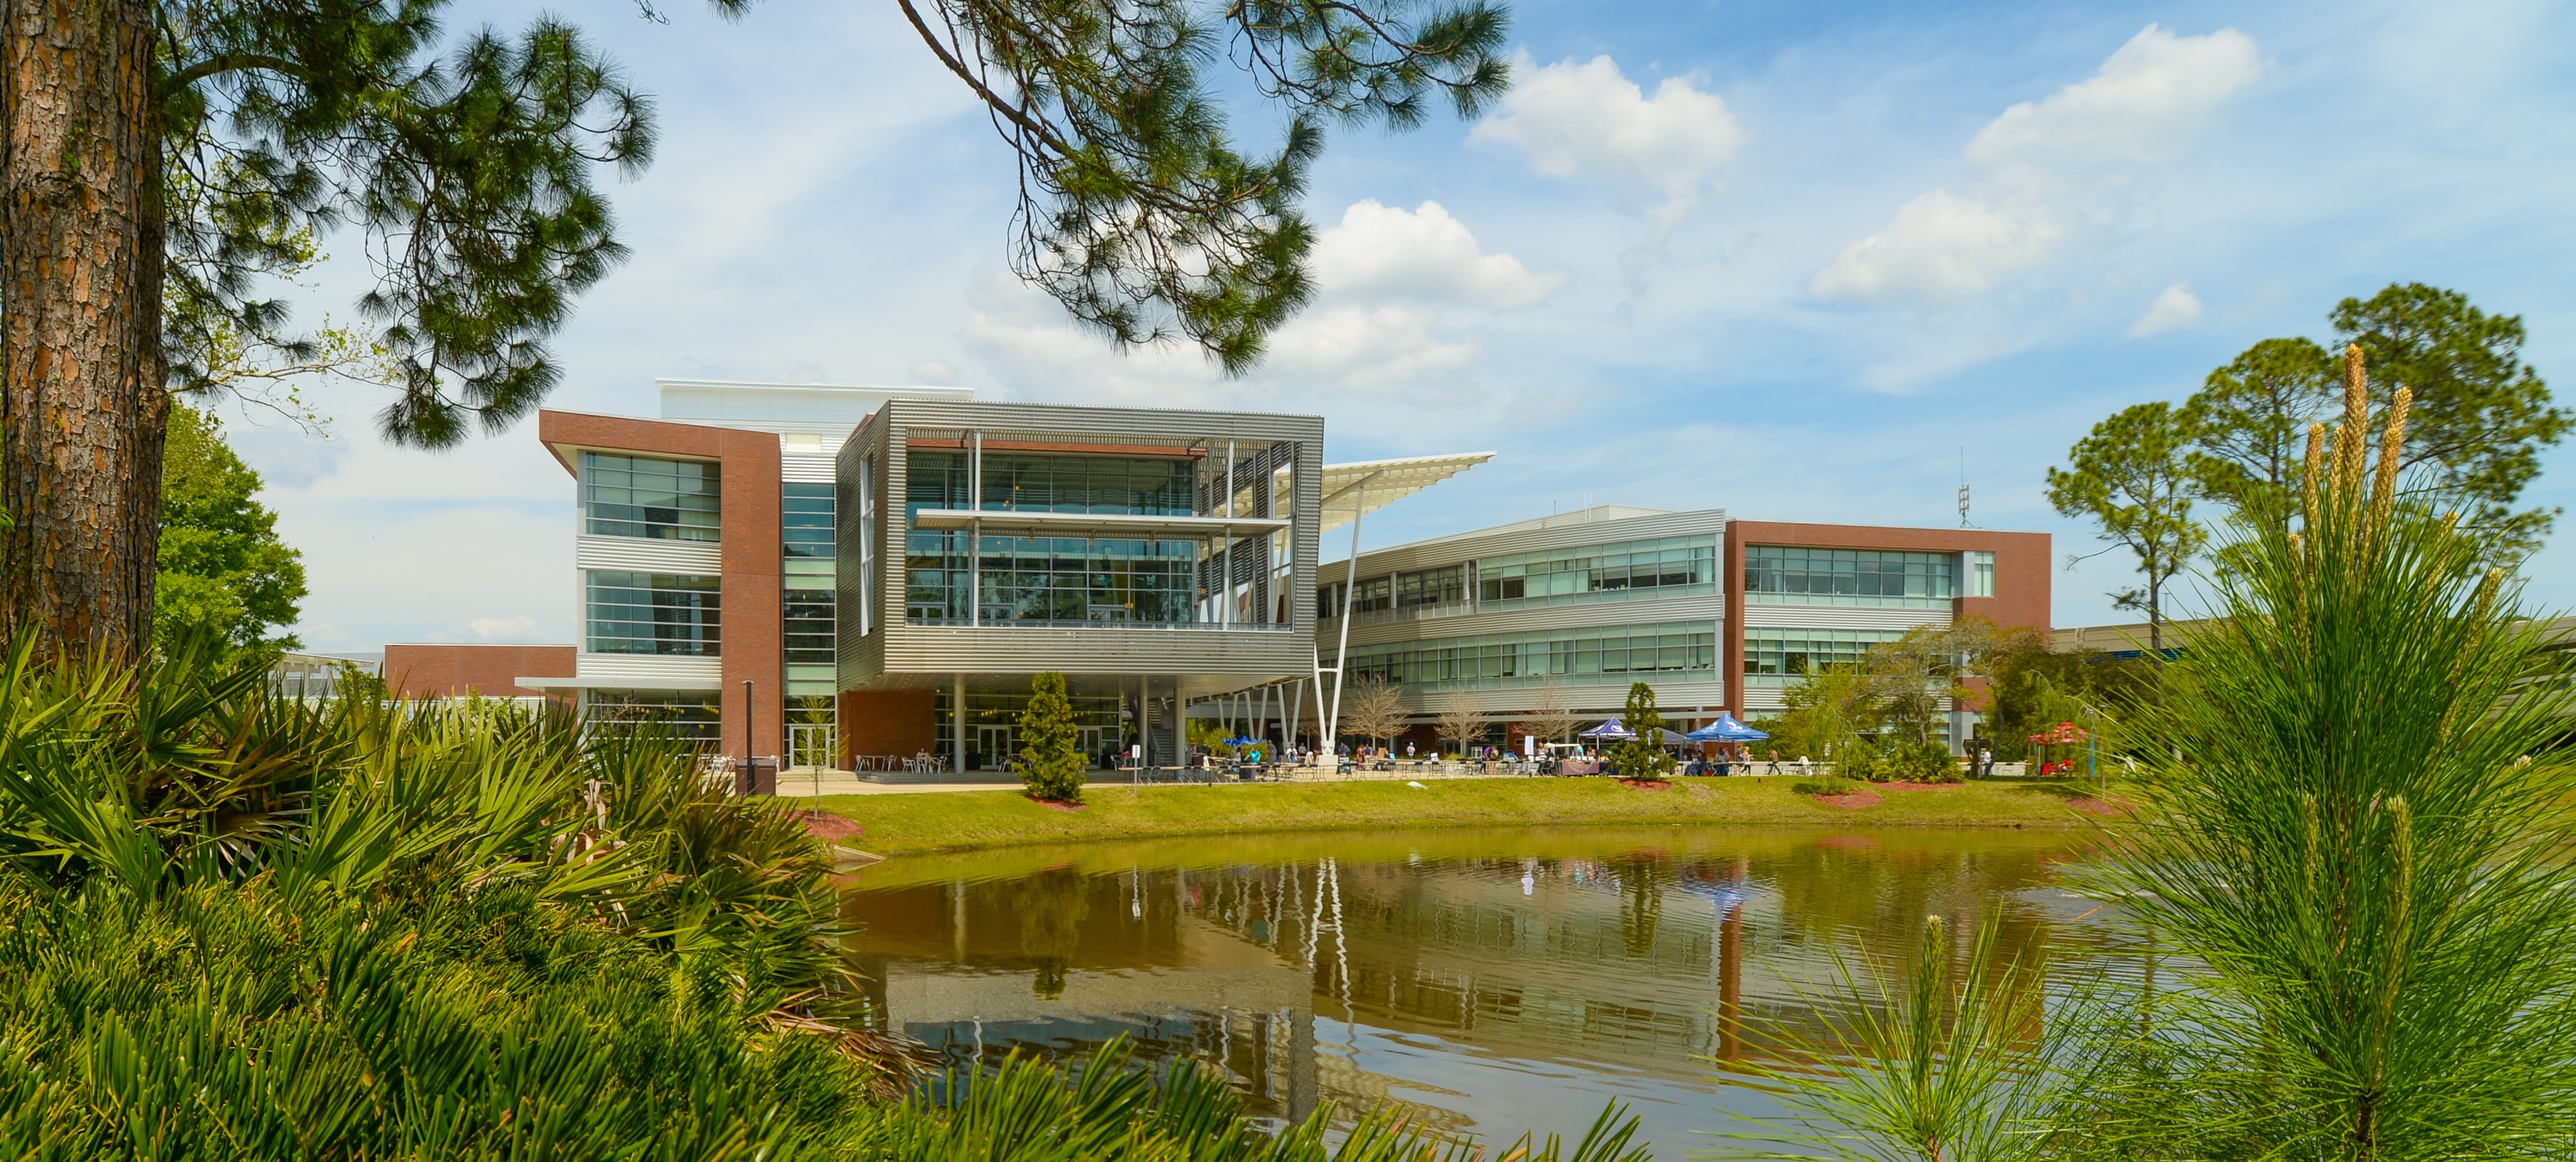 A photo of the John A. Delaney Student Union